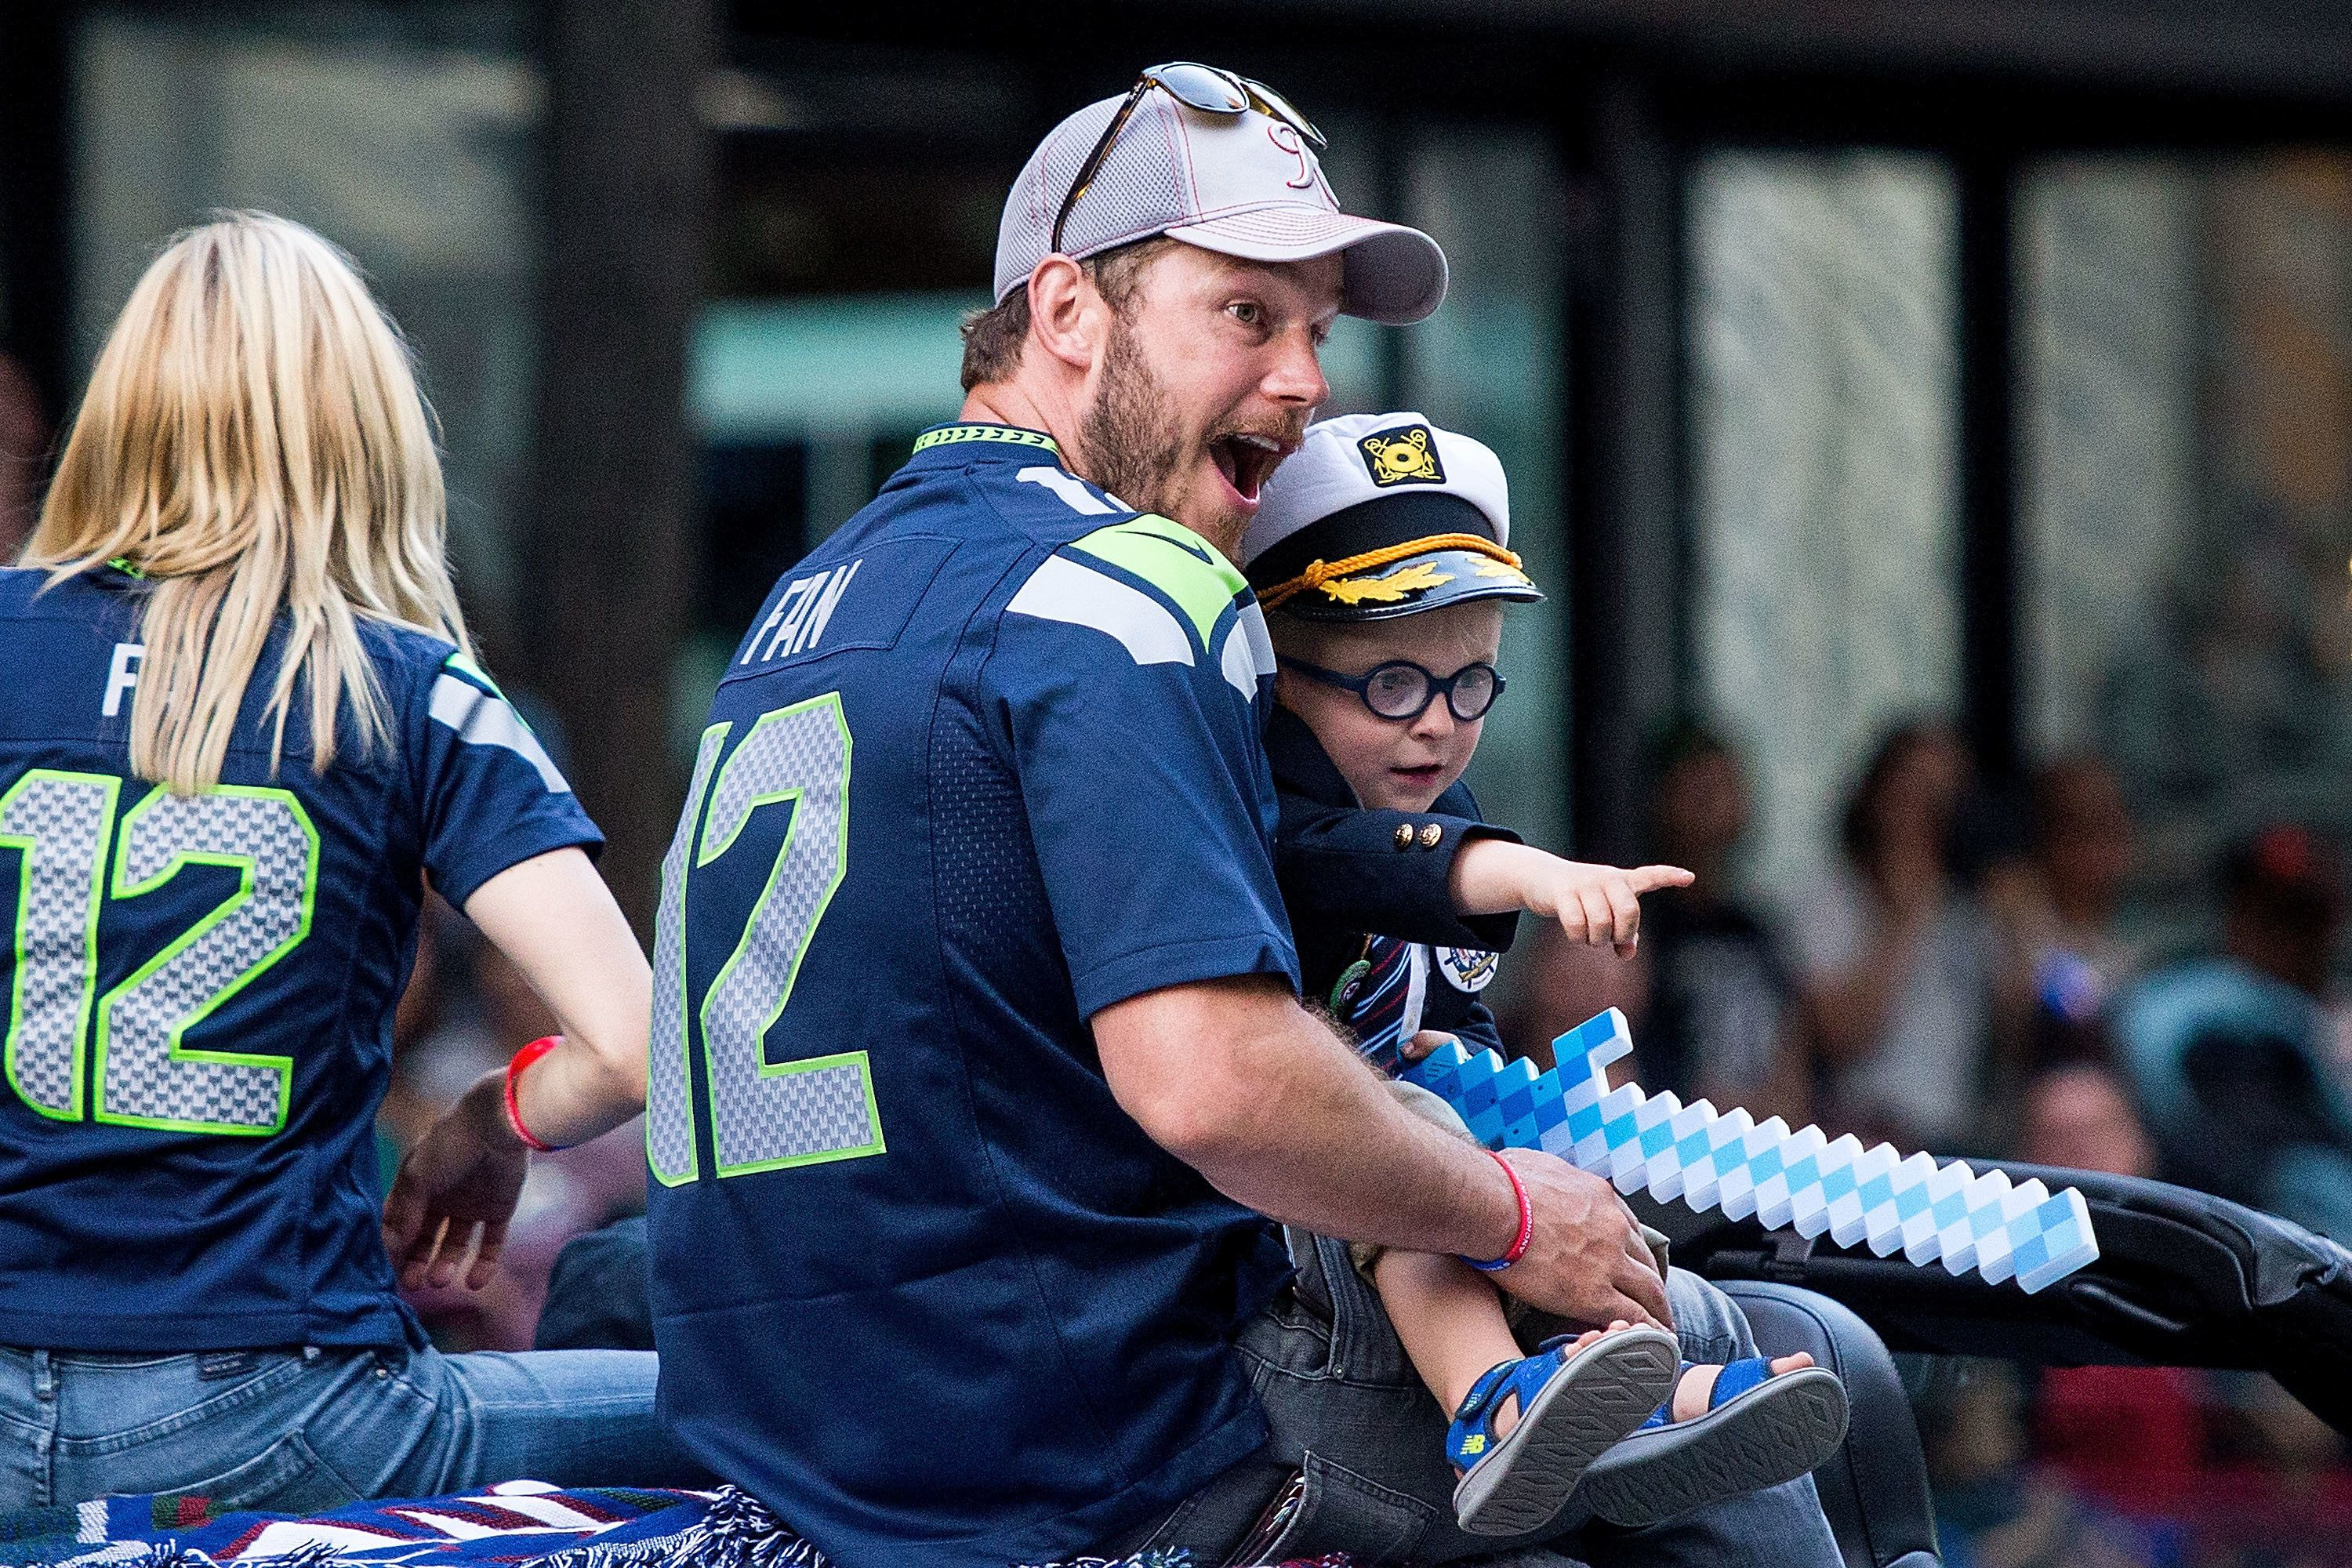 Chris Pratt and son Jack Pratt ride in the Seafair Torchlight Parade Grand Marshal vehicle on July 30, 2016 in Seattle, Washi